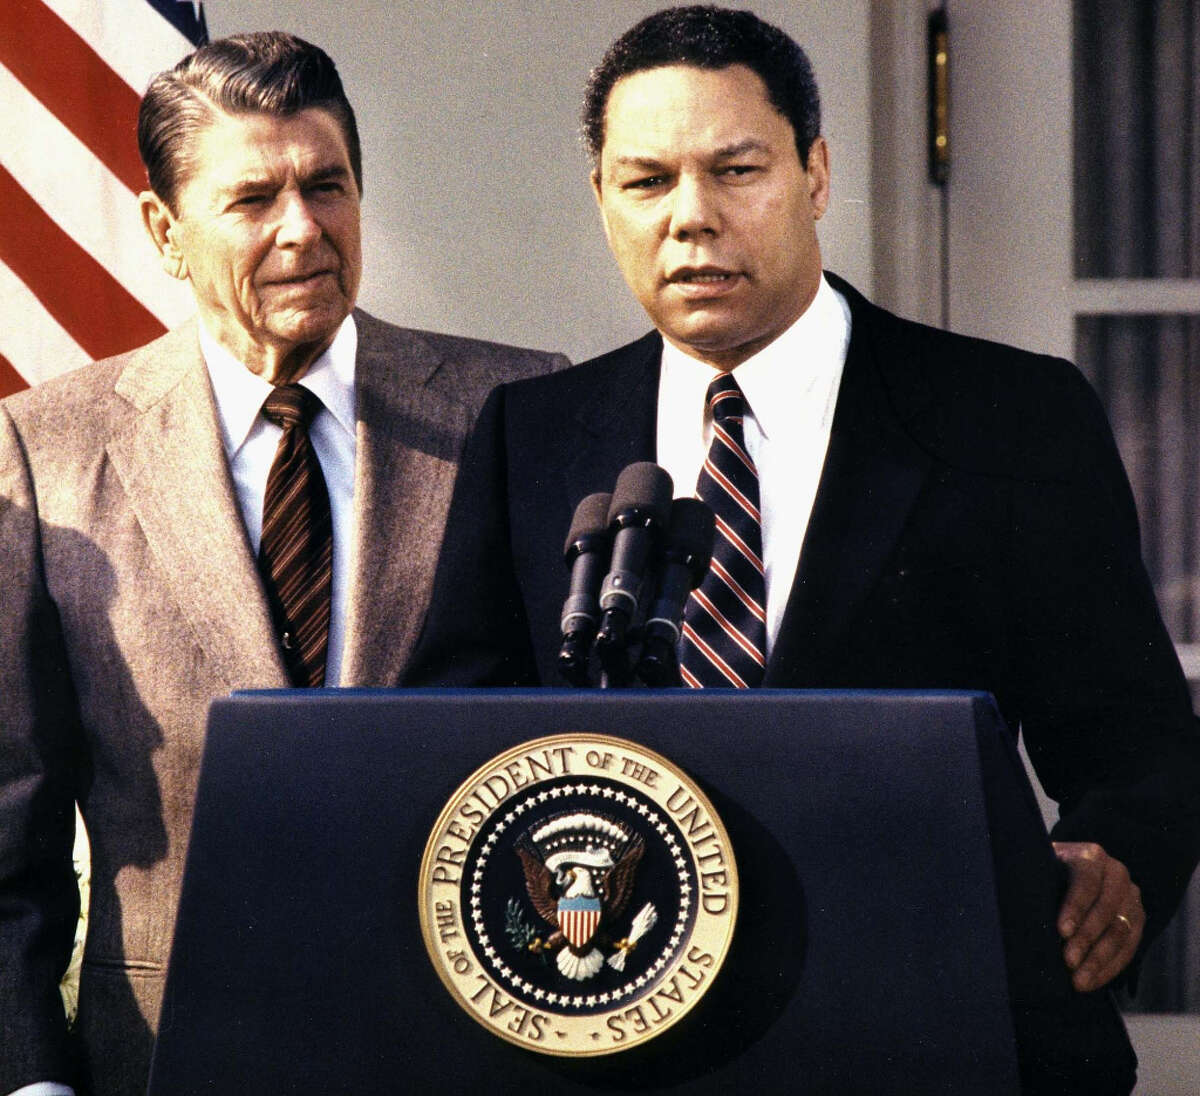 Then Lt. General Colin Powell stands with then President Ronald Reagan in 1987. Powell was the highest ranking African-American in the Reagan administration at the time. (Photo by CHRIS WILKINS/AFP/Getty Images)